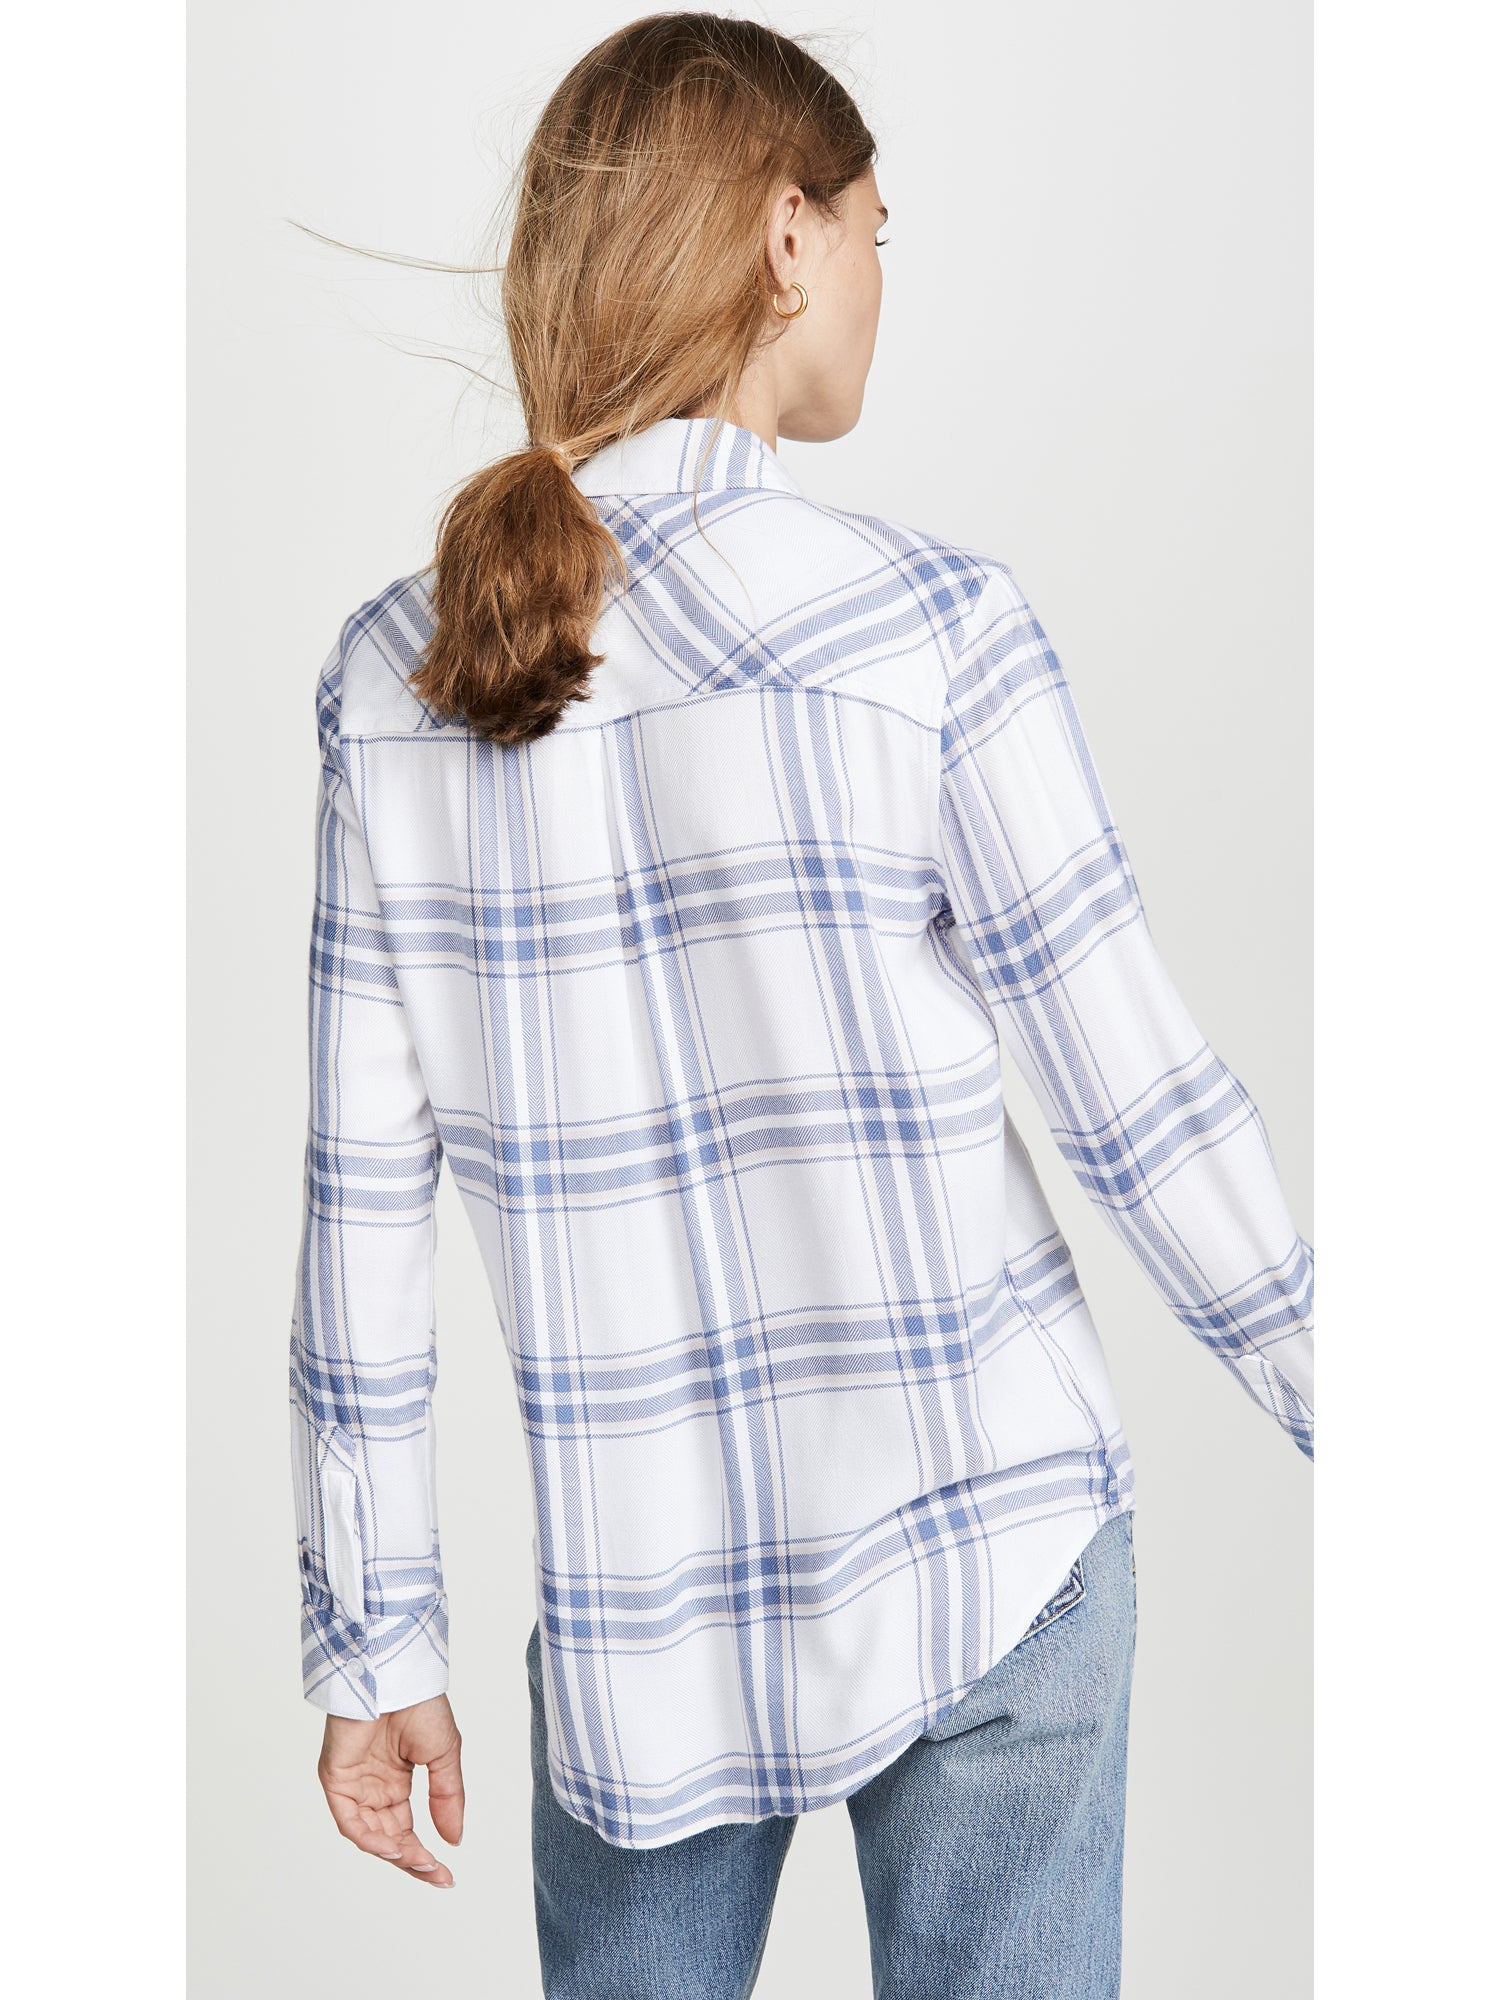 Rails Hunter Top - White Blush Blue Plaid Button Down Shirt | TILDEN